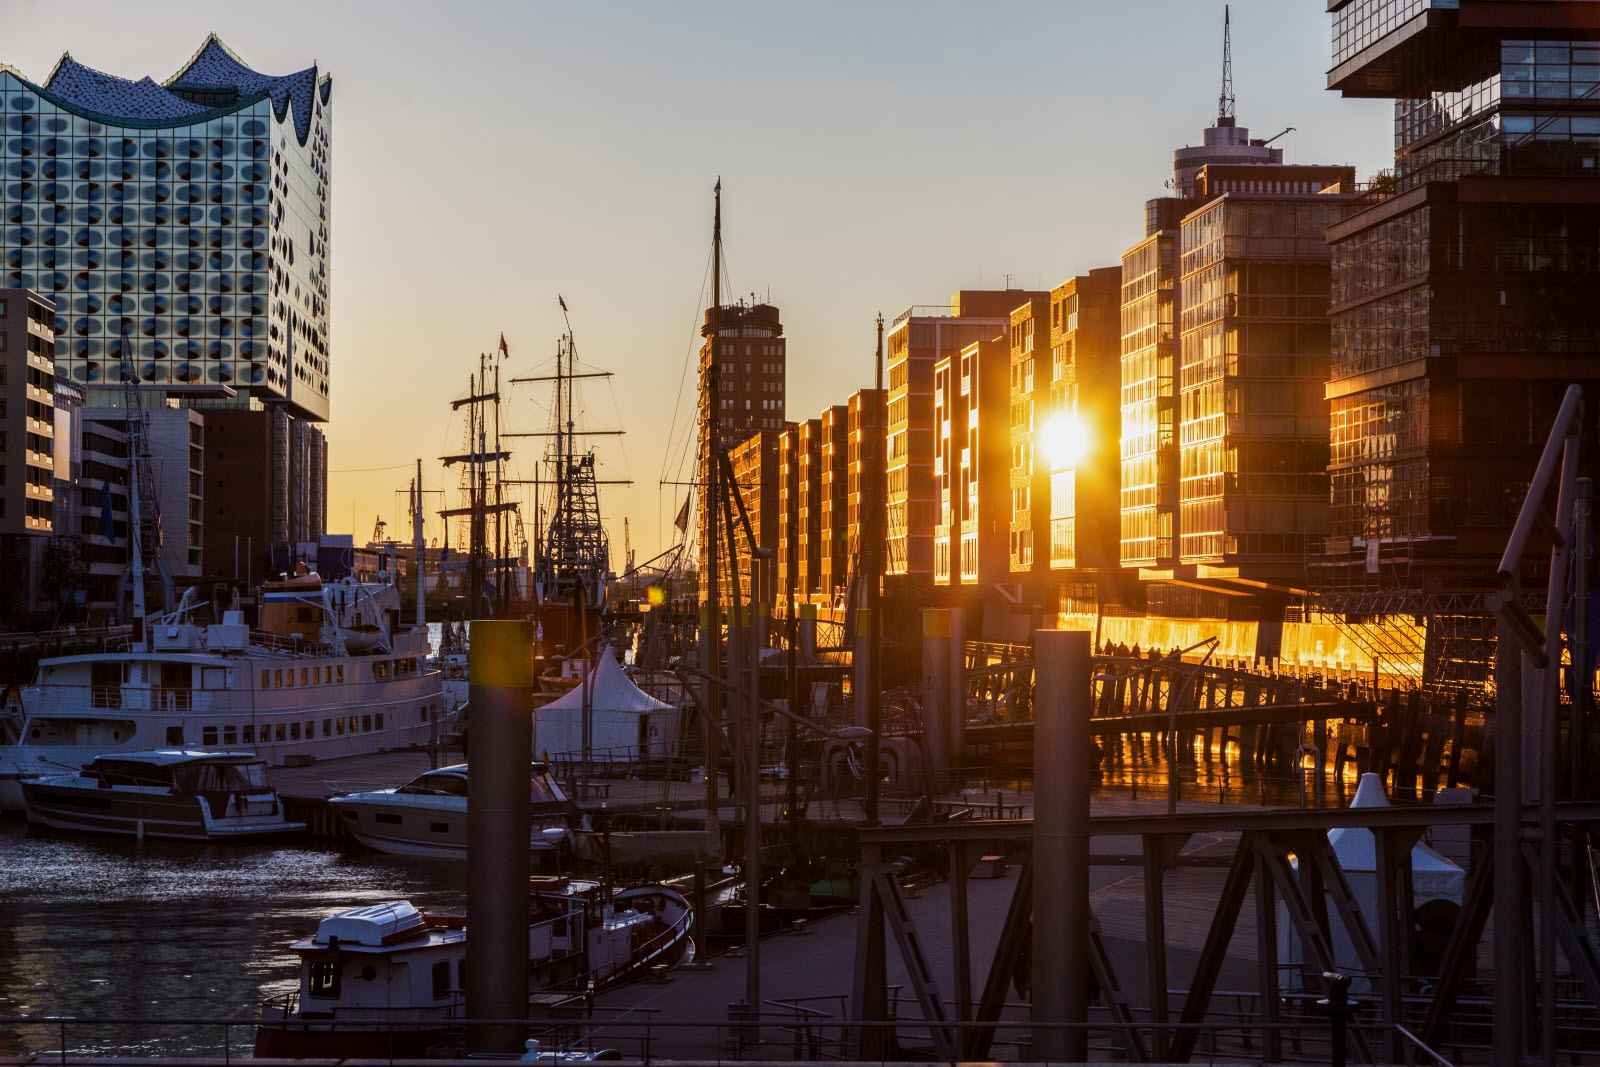 Architecture of Hamburg at sunset. Hamburg, Germany.